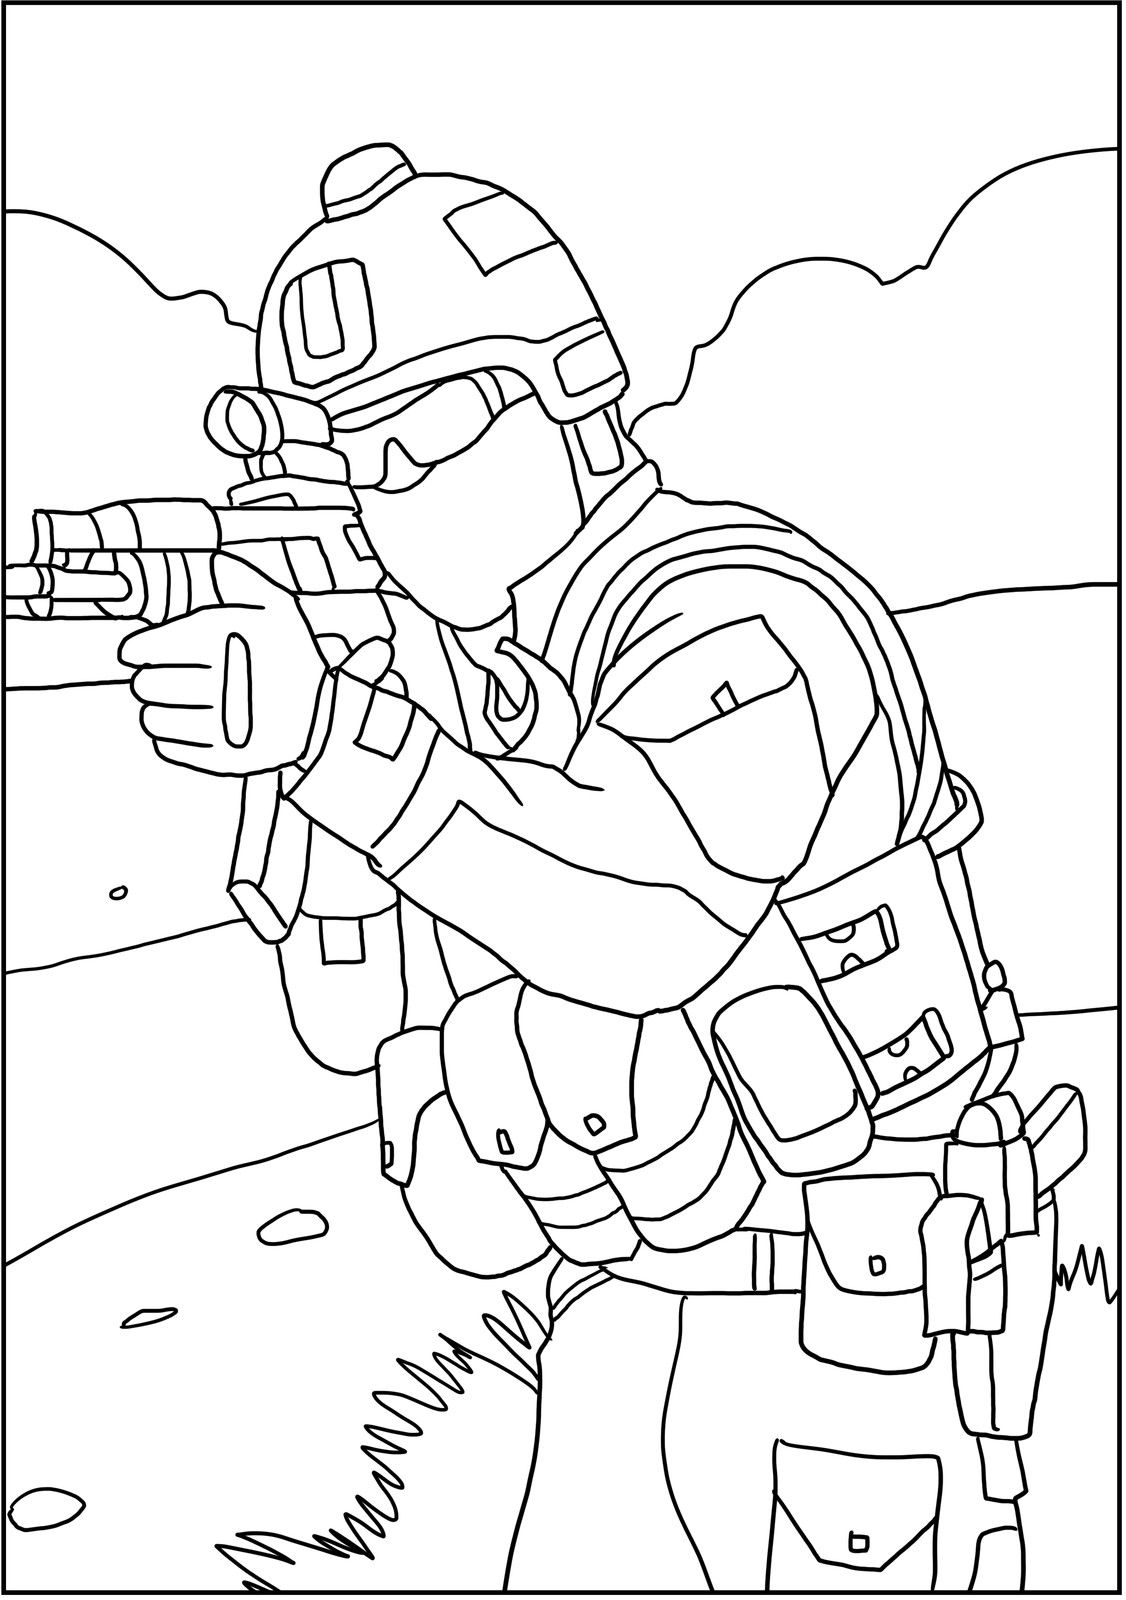 Patriotic Us Military Coloring Pages Coloring Books Veterans Day Coloring Page Military Drawings